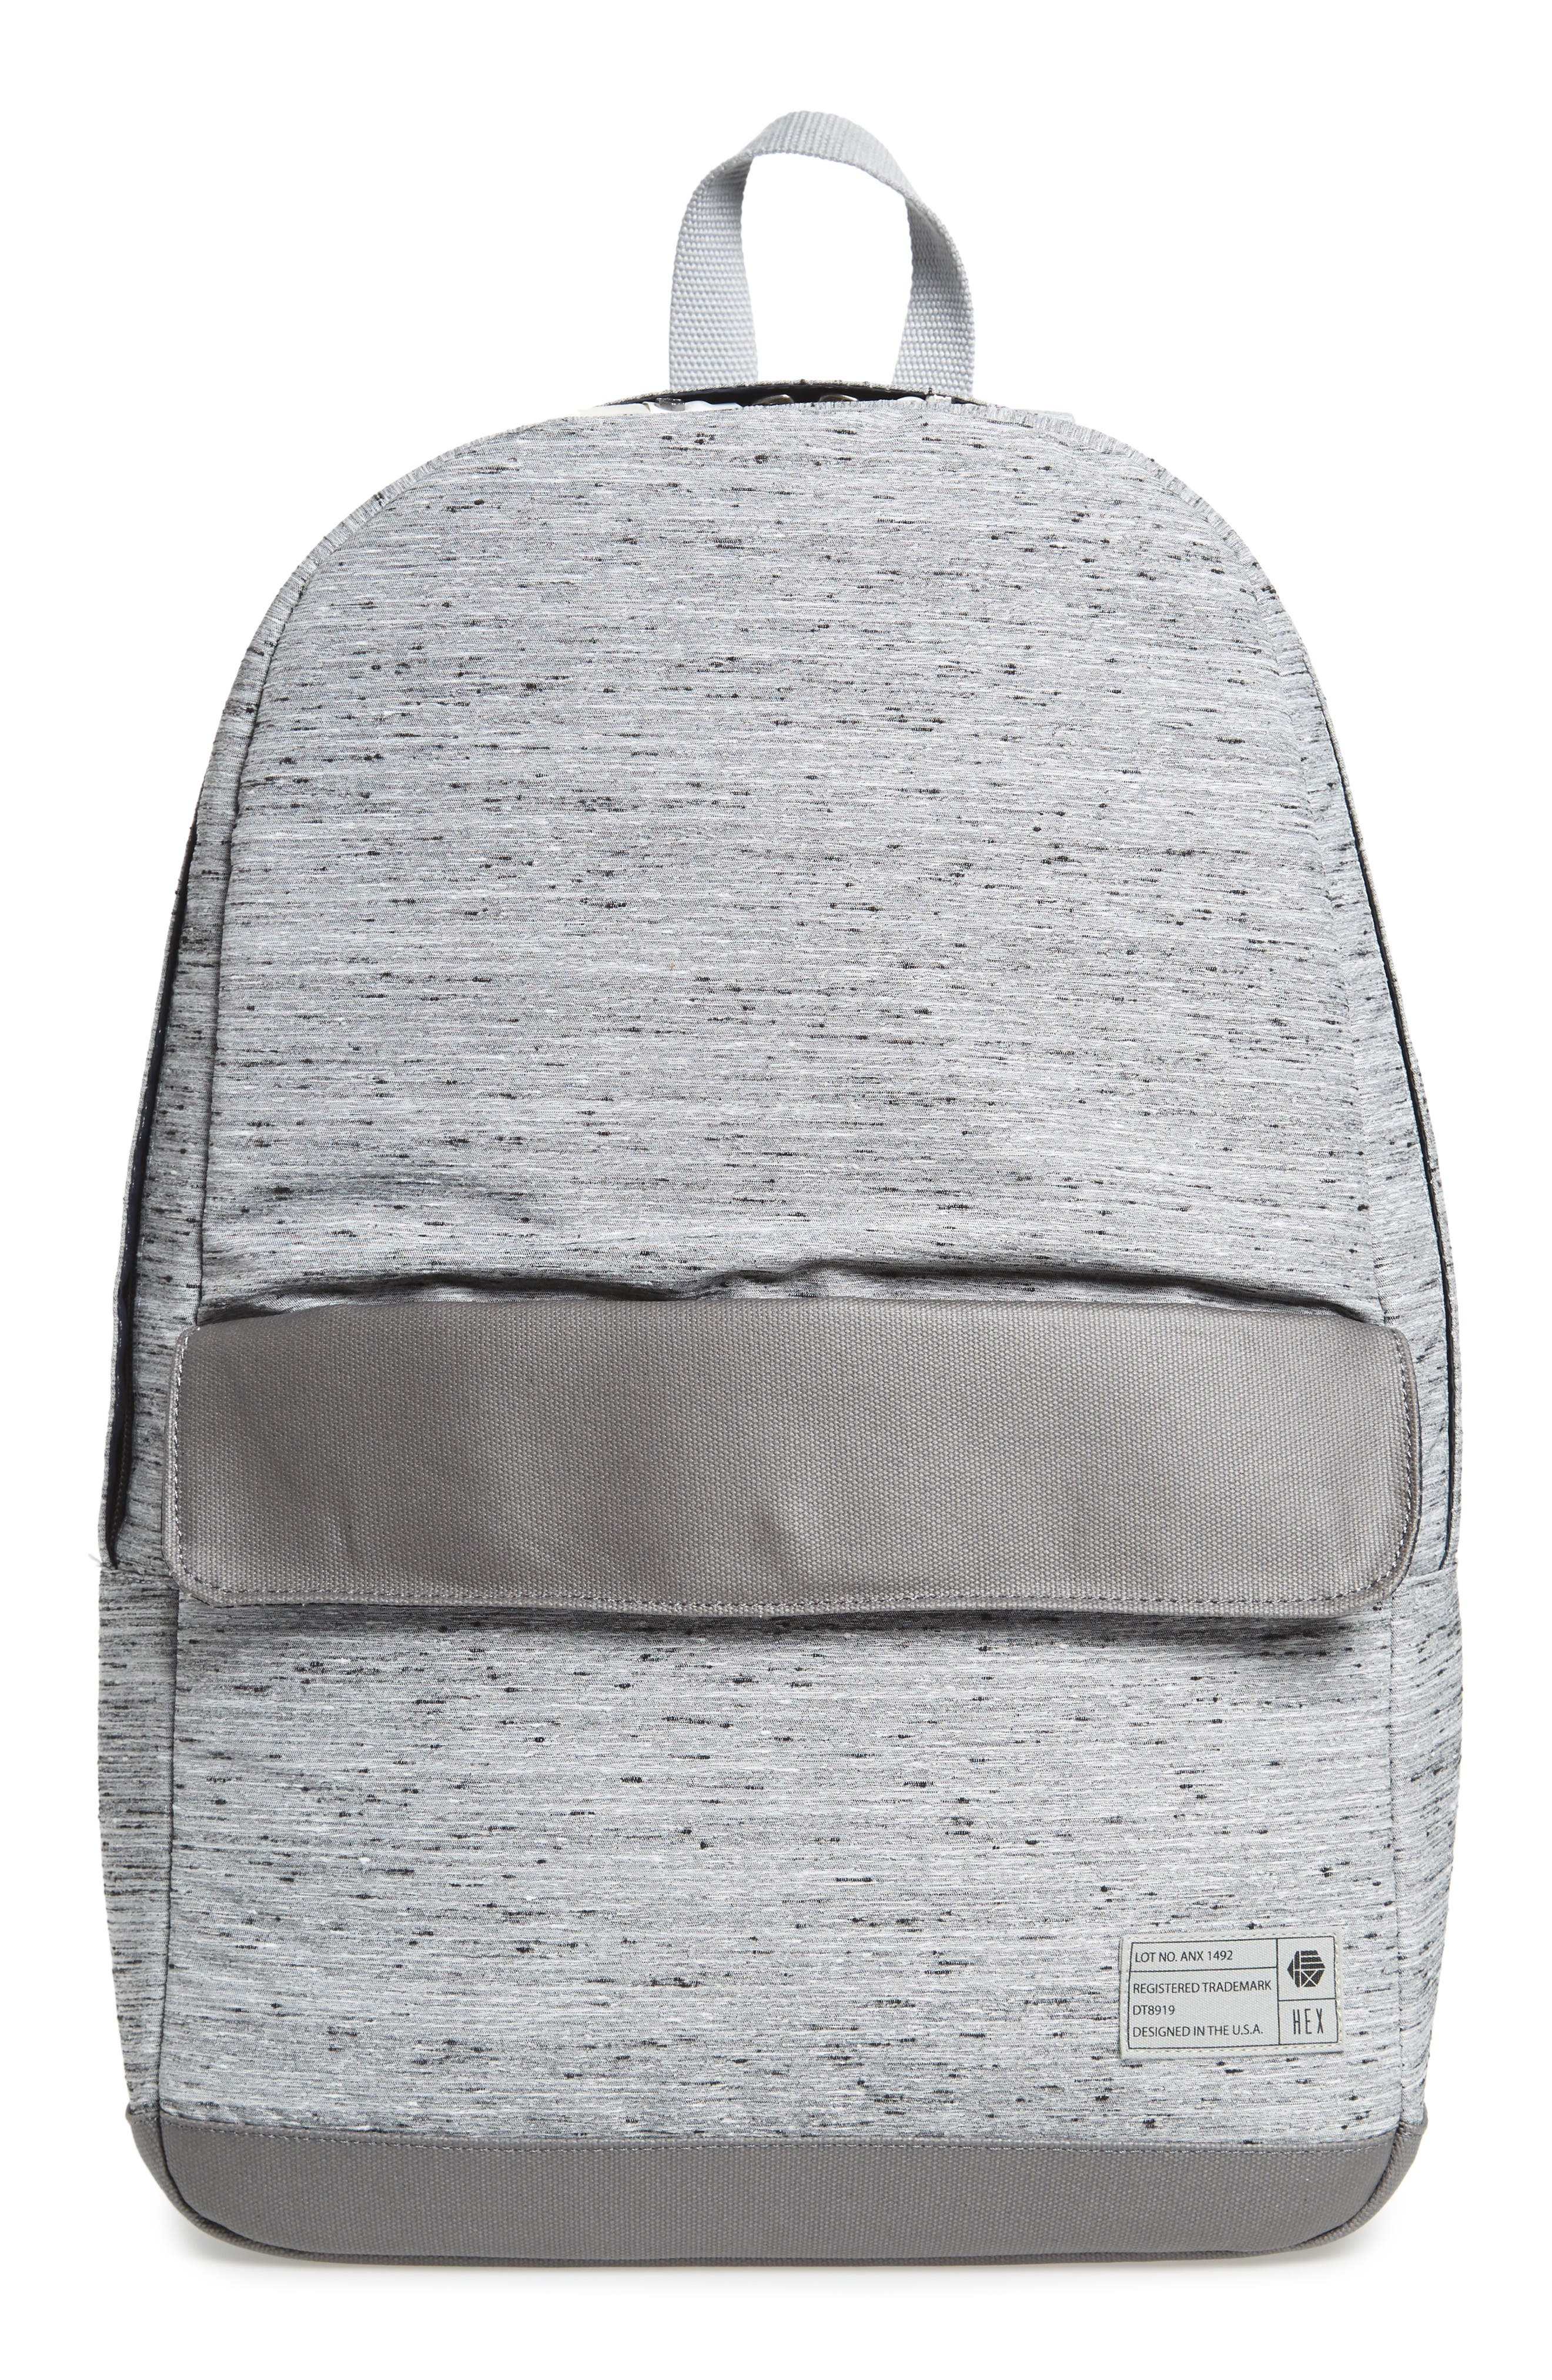 'Echo' Backpack,                             Main thumbnail 1, color,                             Annex Grey Slub